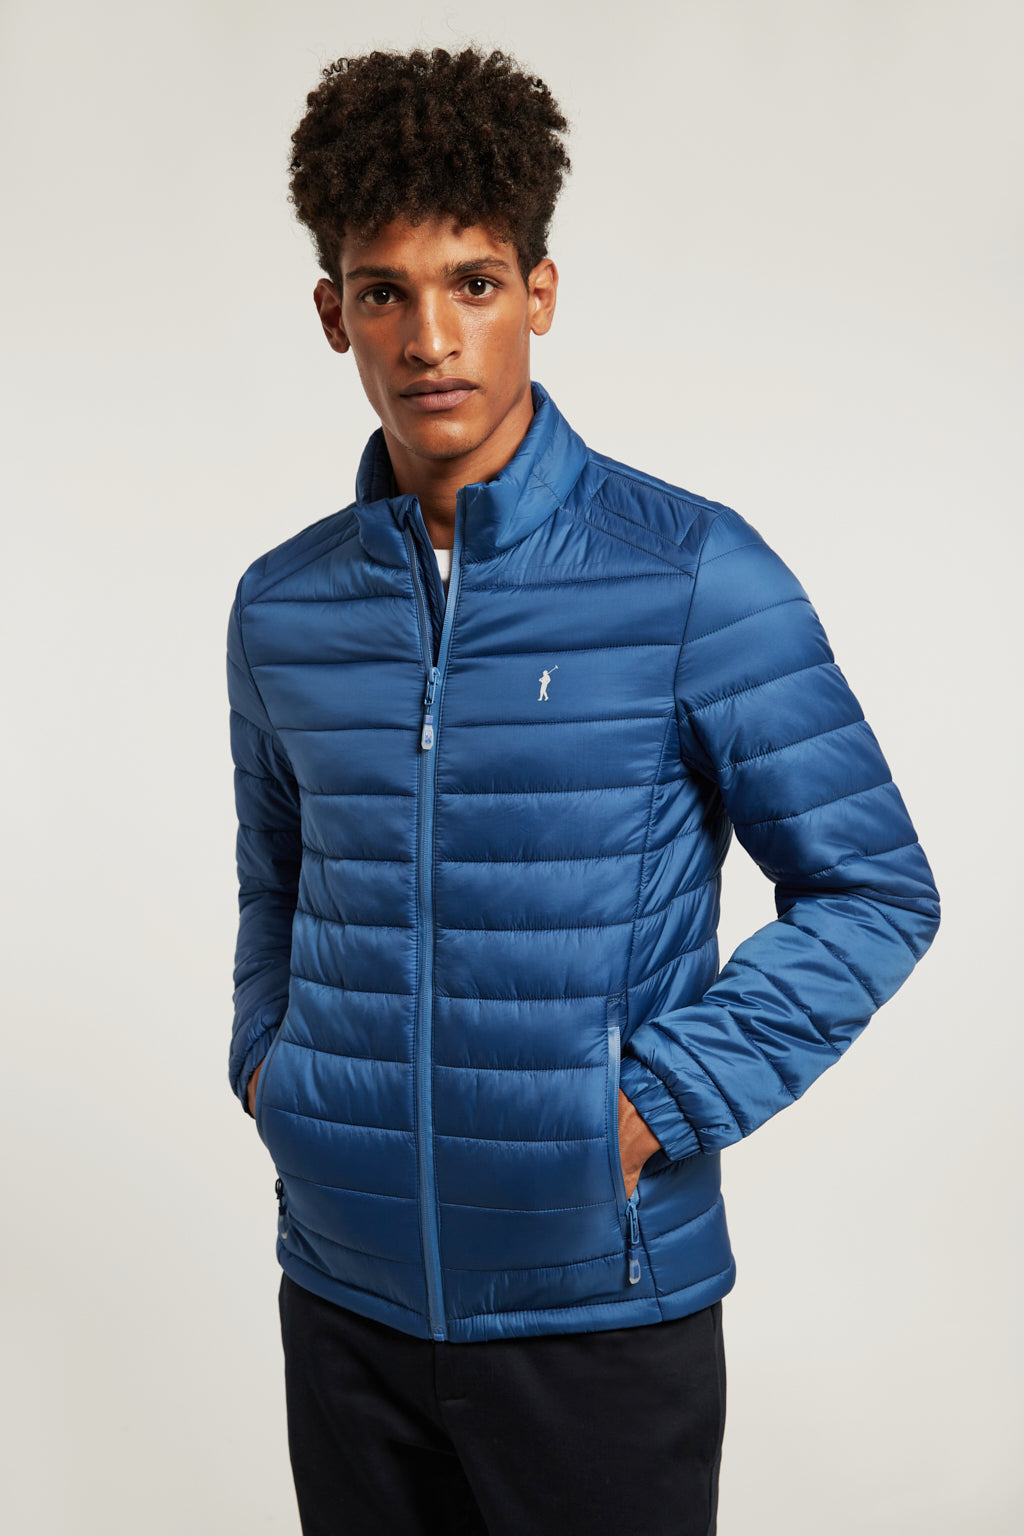 Royal blue quilted jacket with heat-sealed zip closure